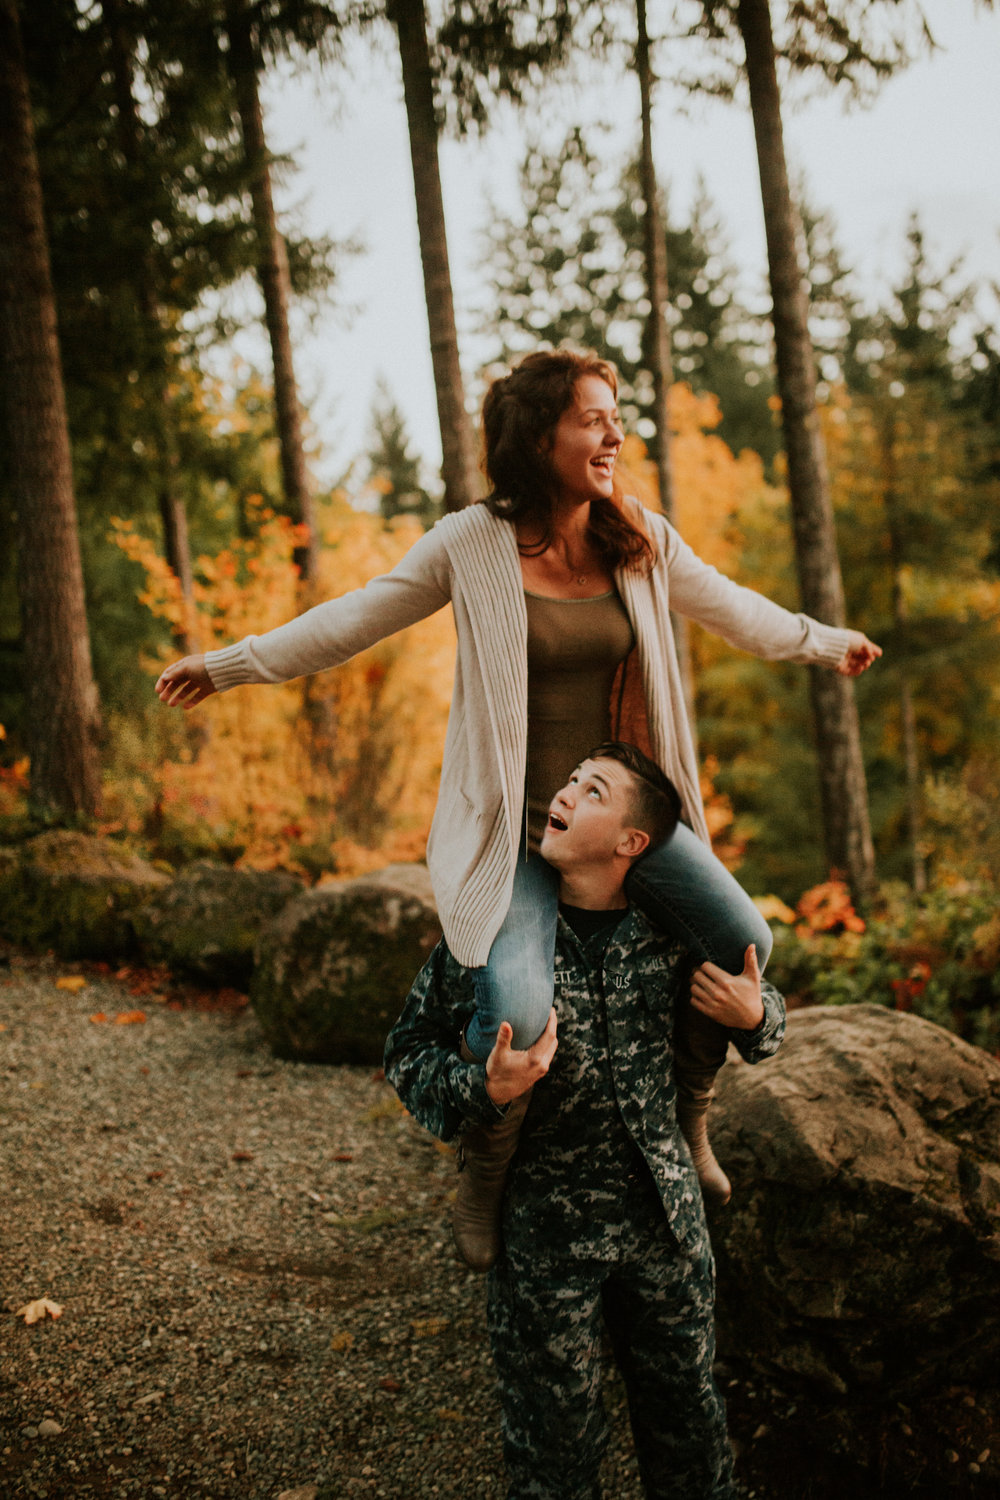 Lake-Cushman-Adventure-Engagement-photographer-breeanna-lasher-110.jpg